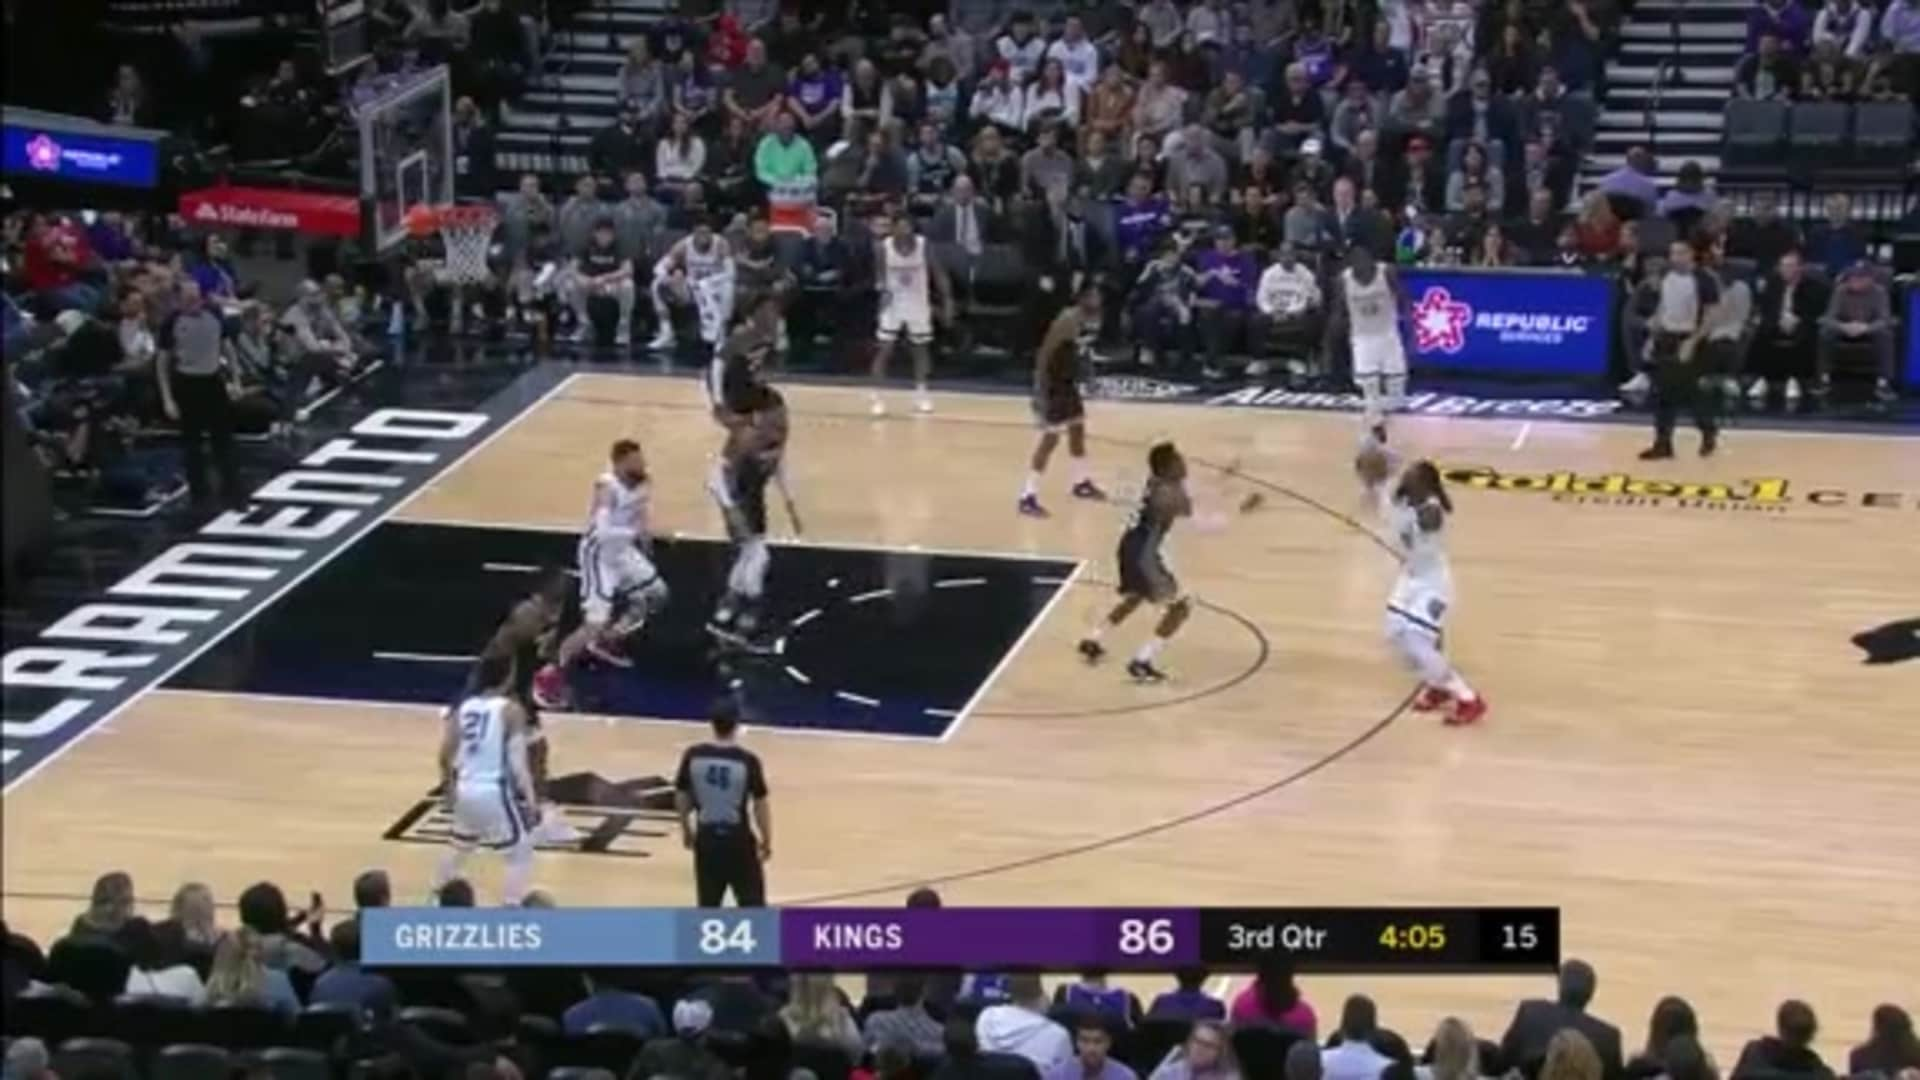 Grizzlies @ Kings highlights 1.2.20